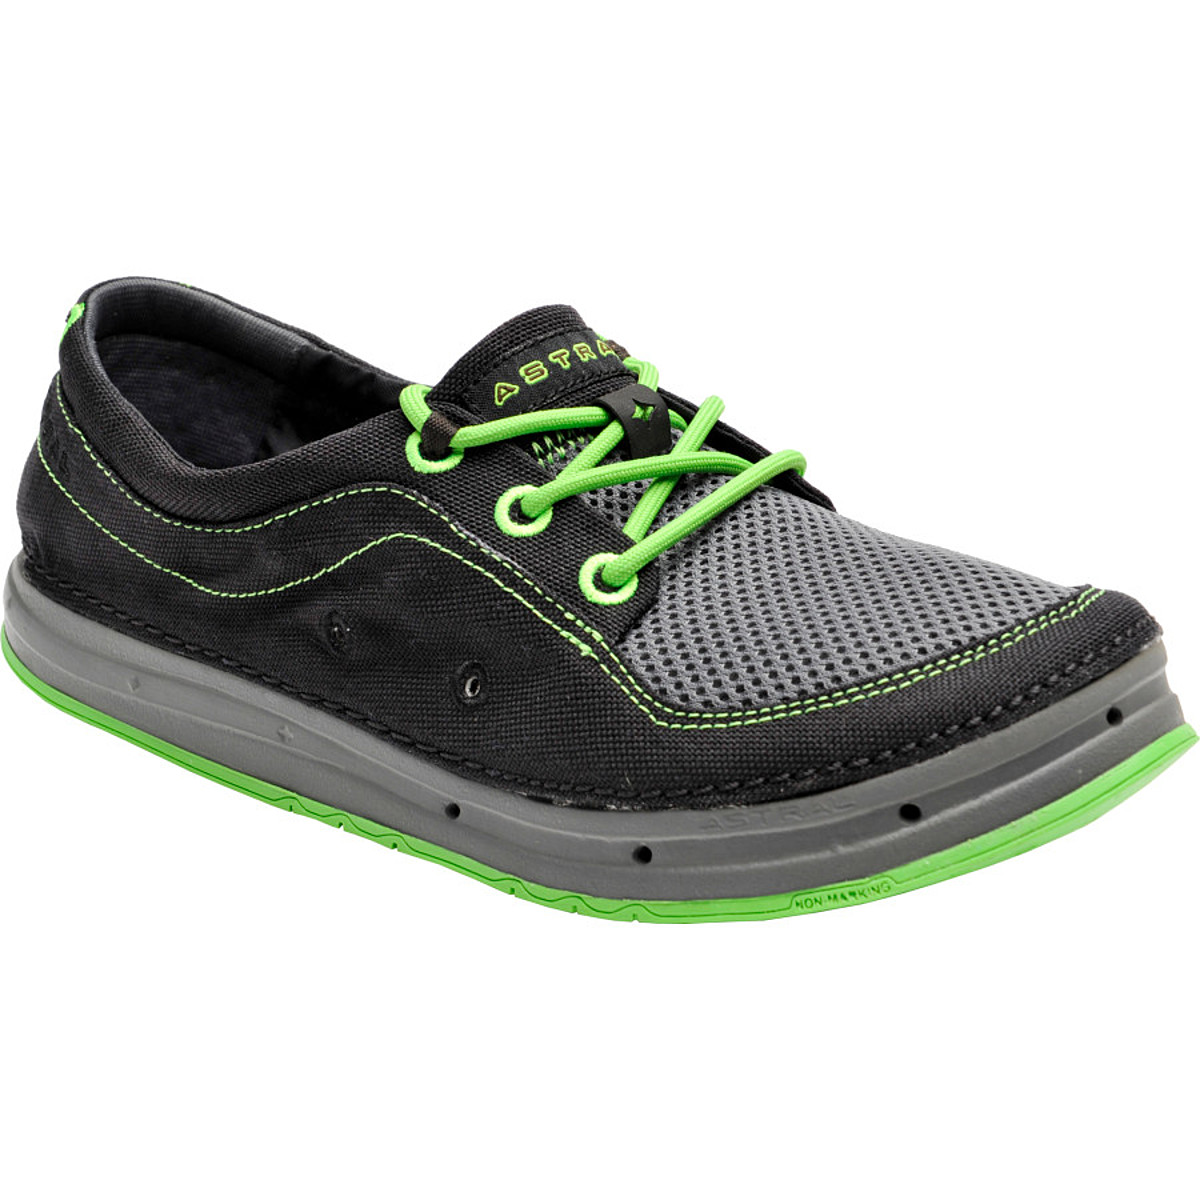 photo: Astral Men's Porter water shoe